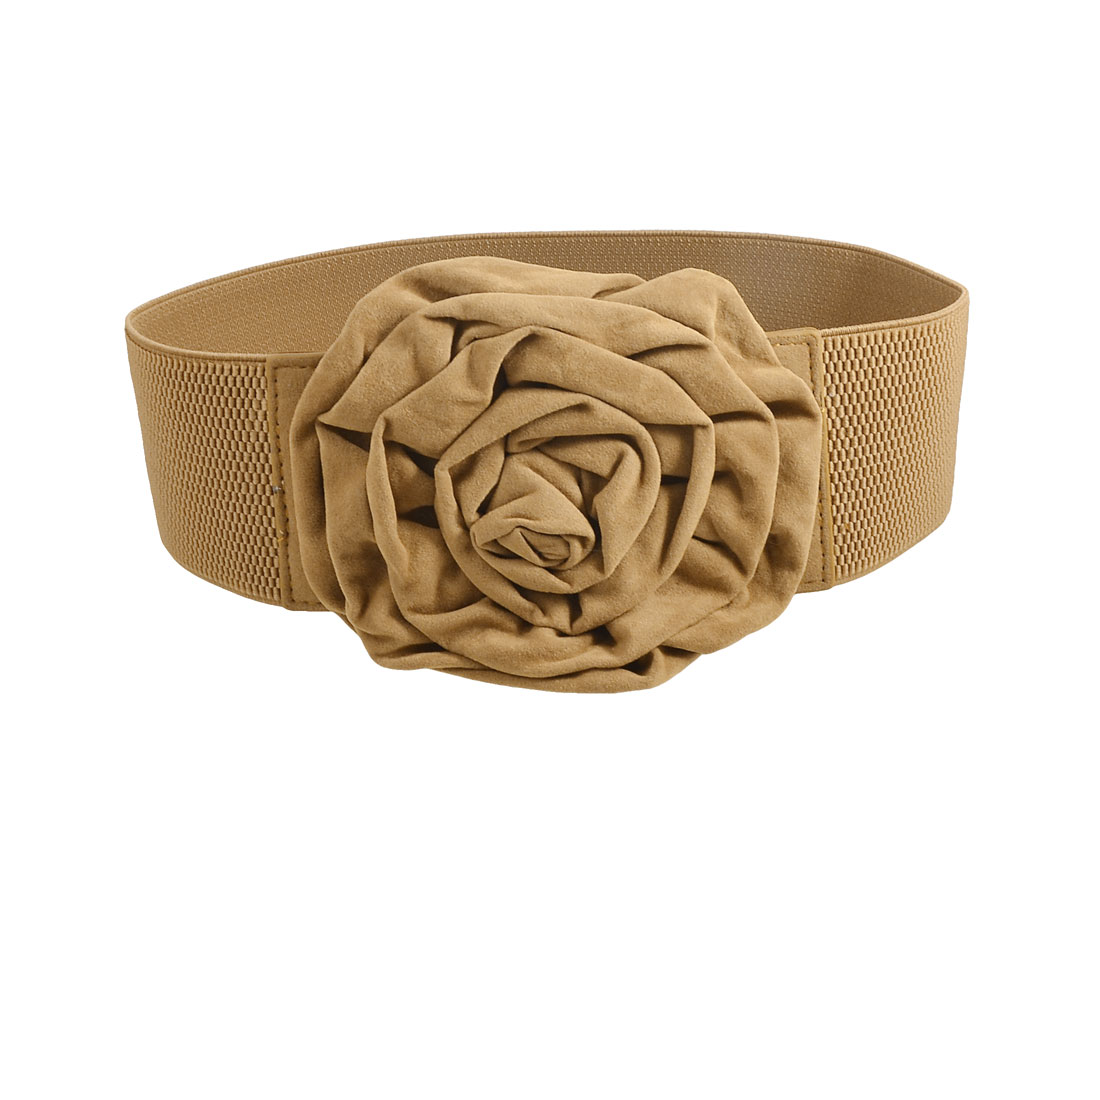 Women Flannel Flower Textured Stretch Wide Waist Cinch Belt Brown